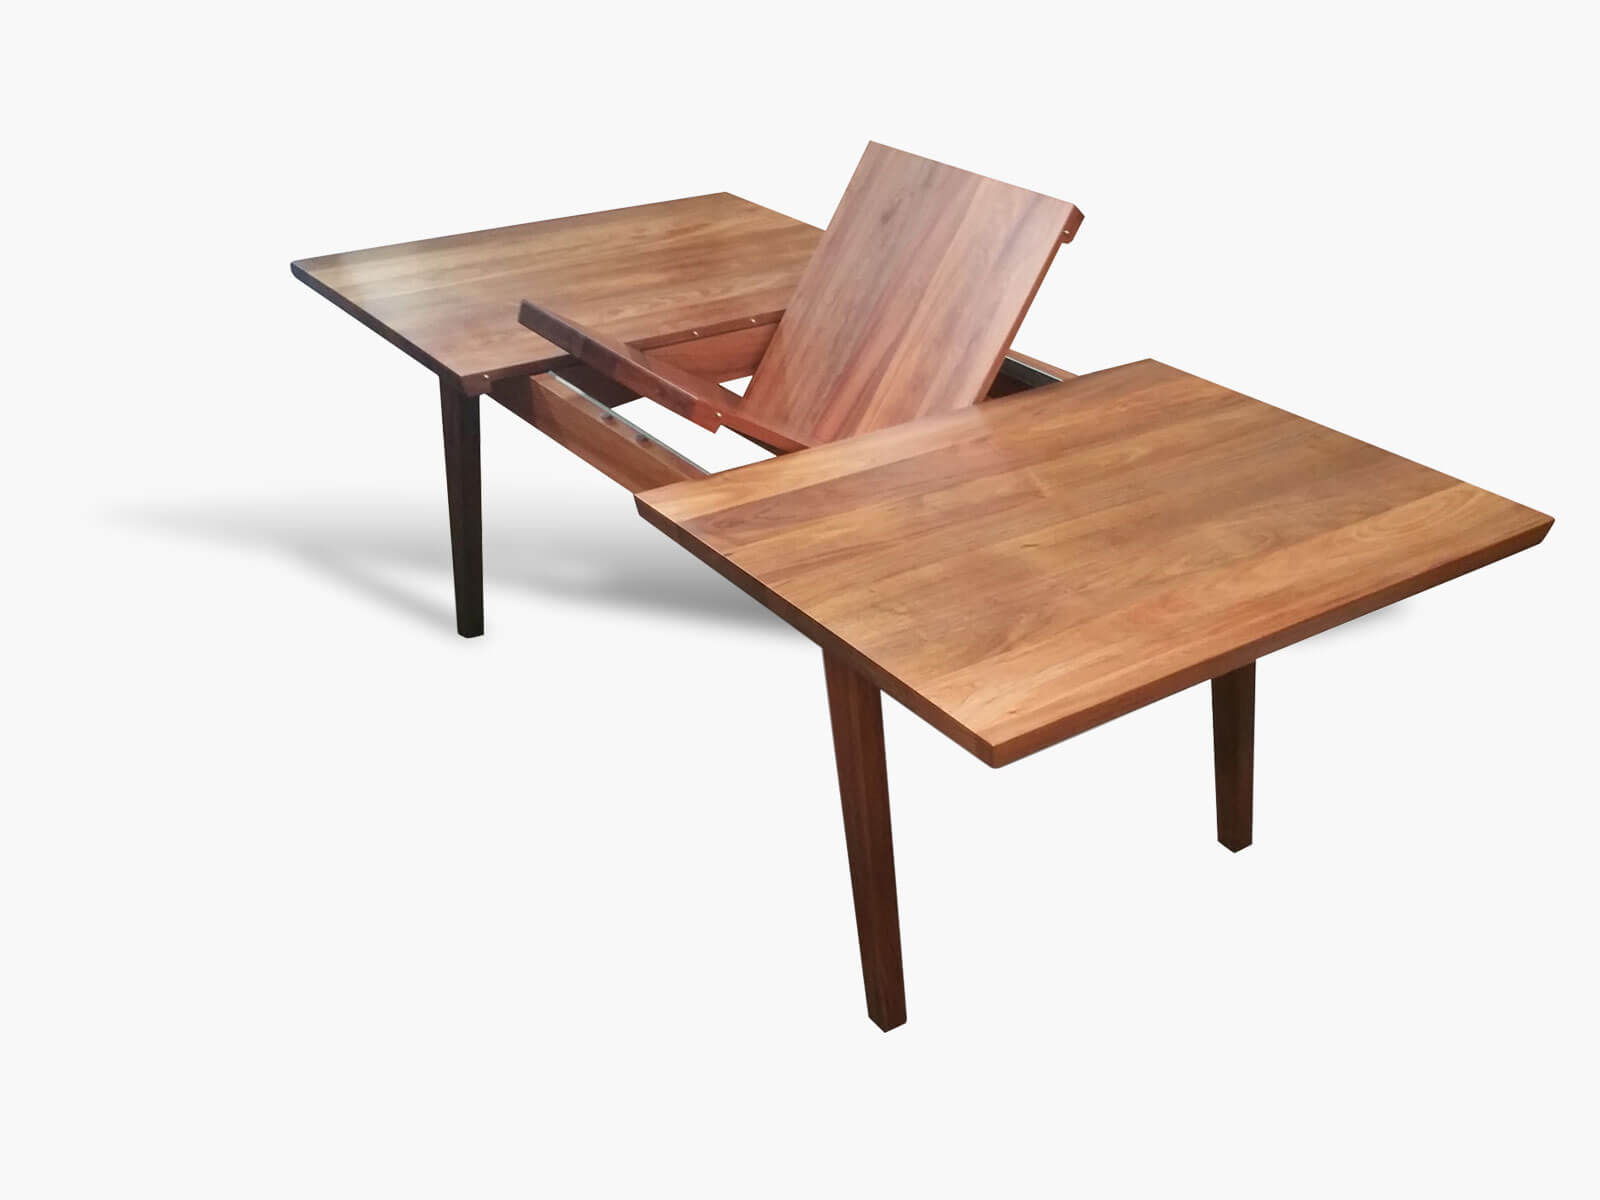 Retro-Extension Timber Furniture